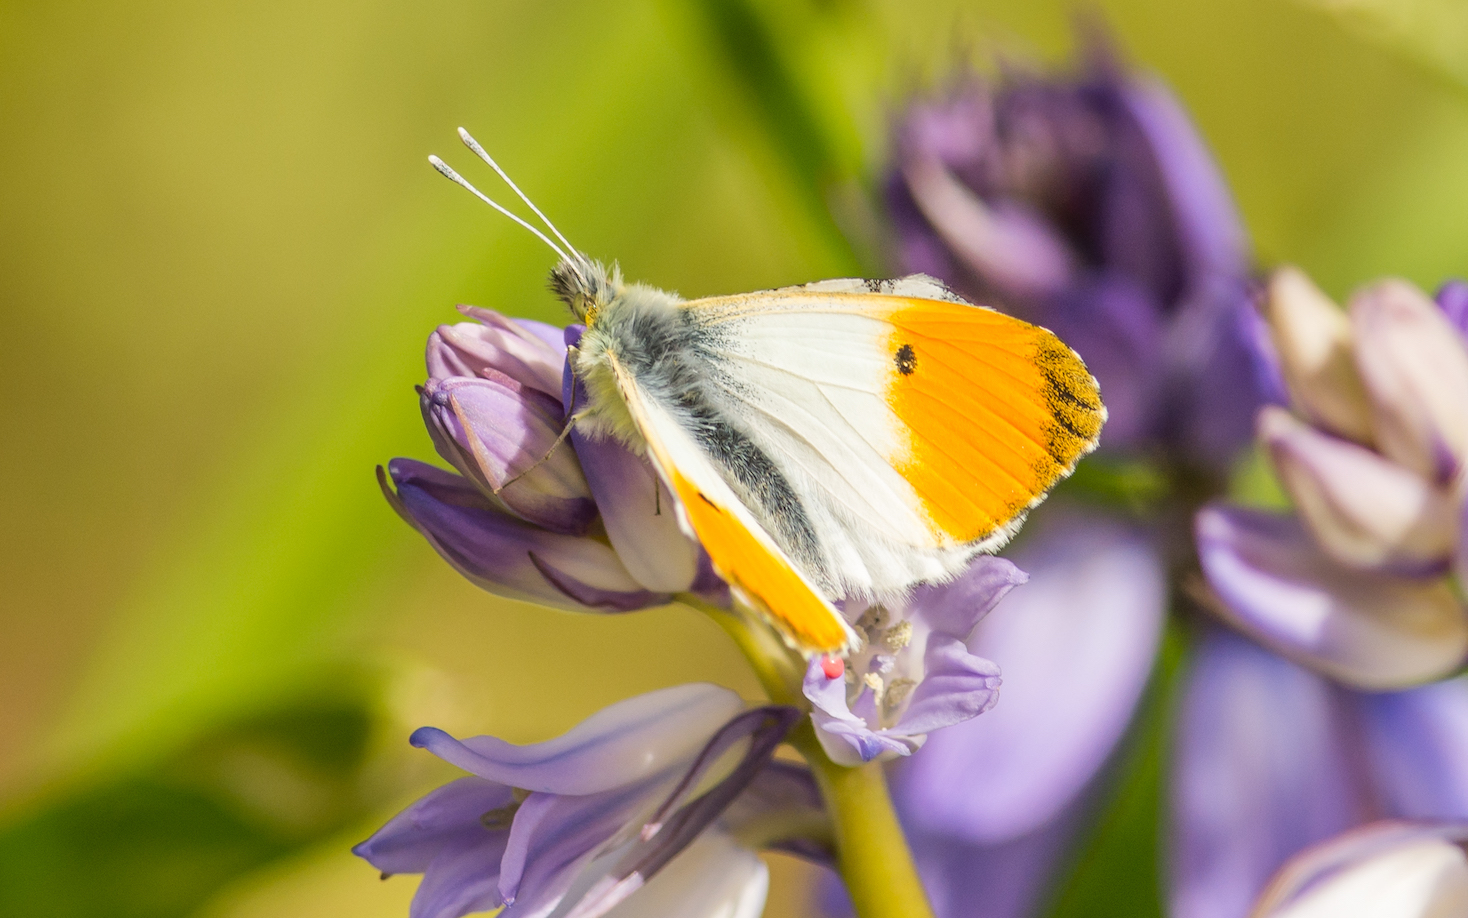 Orange tip butterfly resting on purple flower